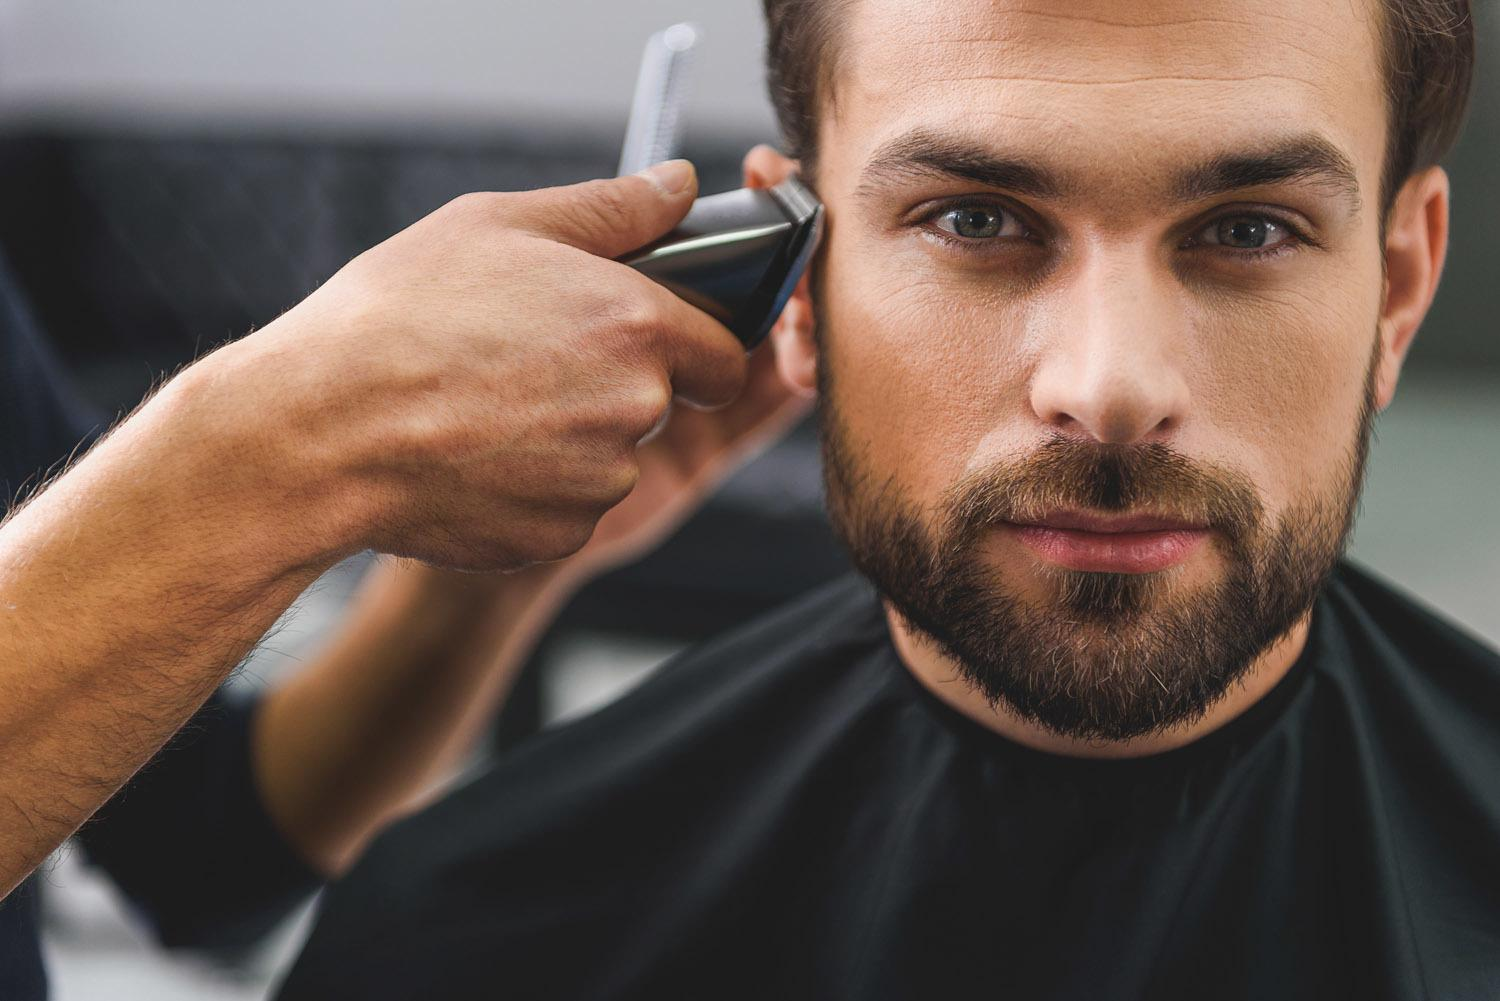 Short Back and Sides: 5 Ways to Rock the Barber's Cut | ATH Philippines